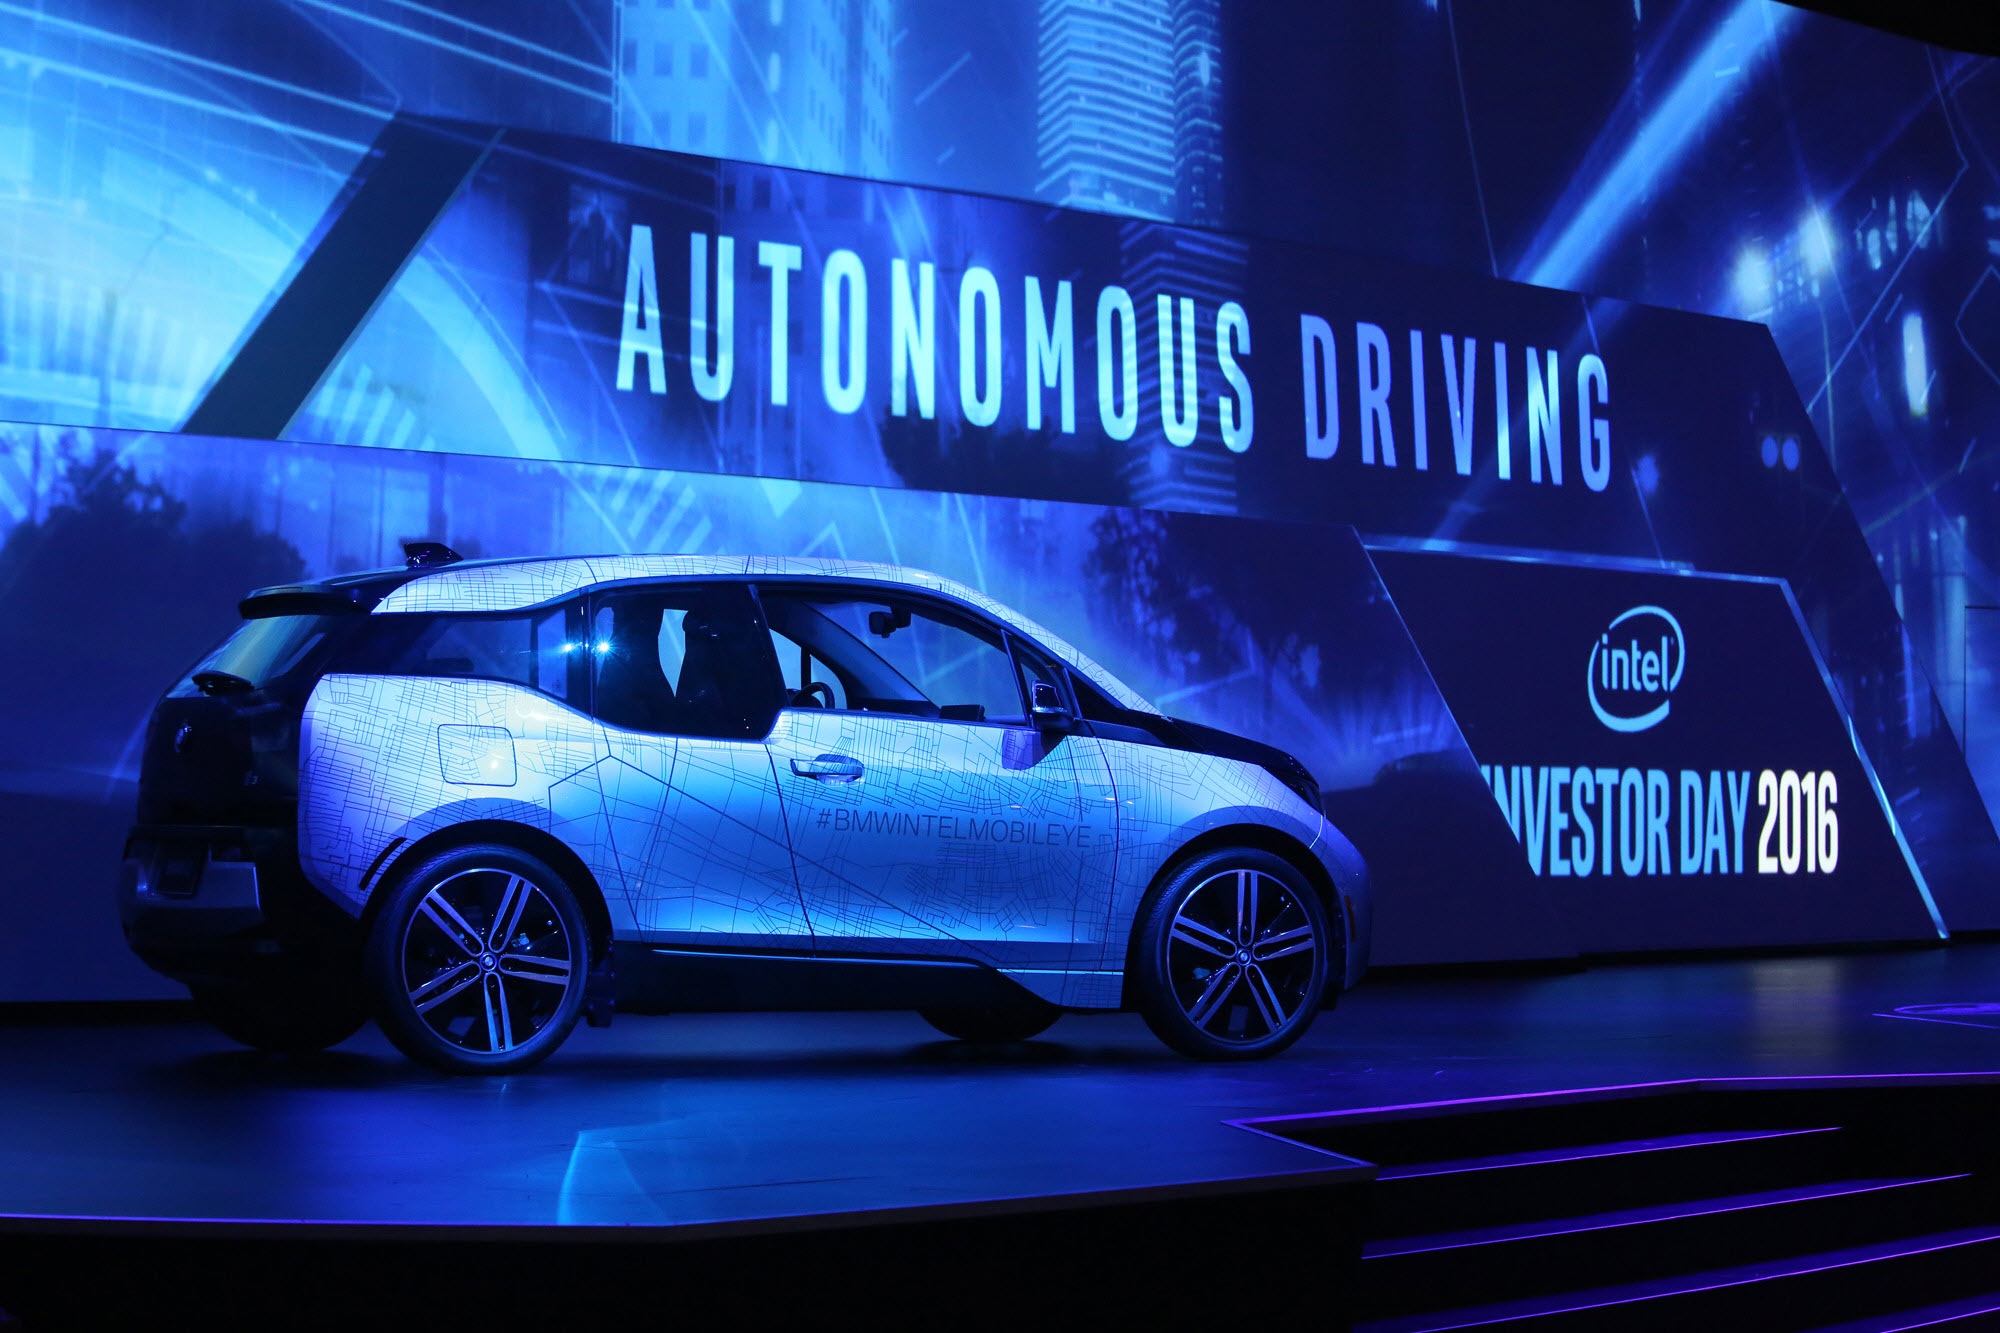 Intel self driving car